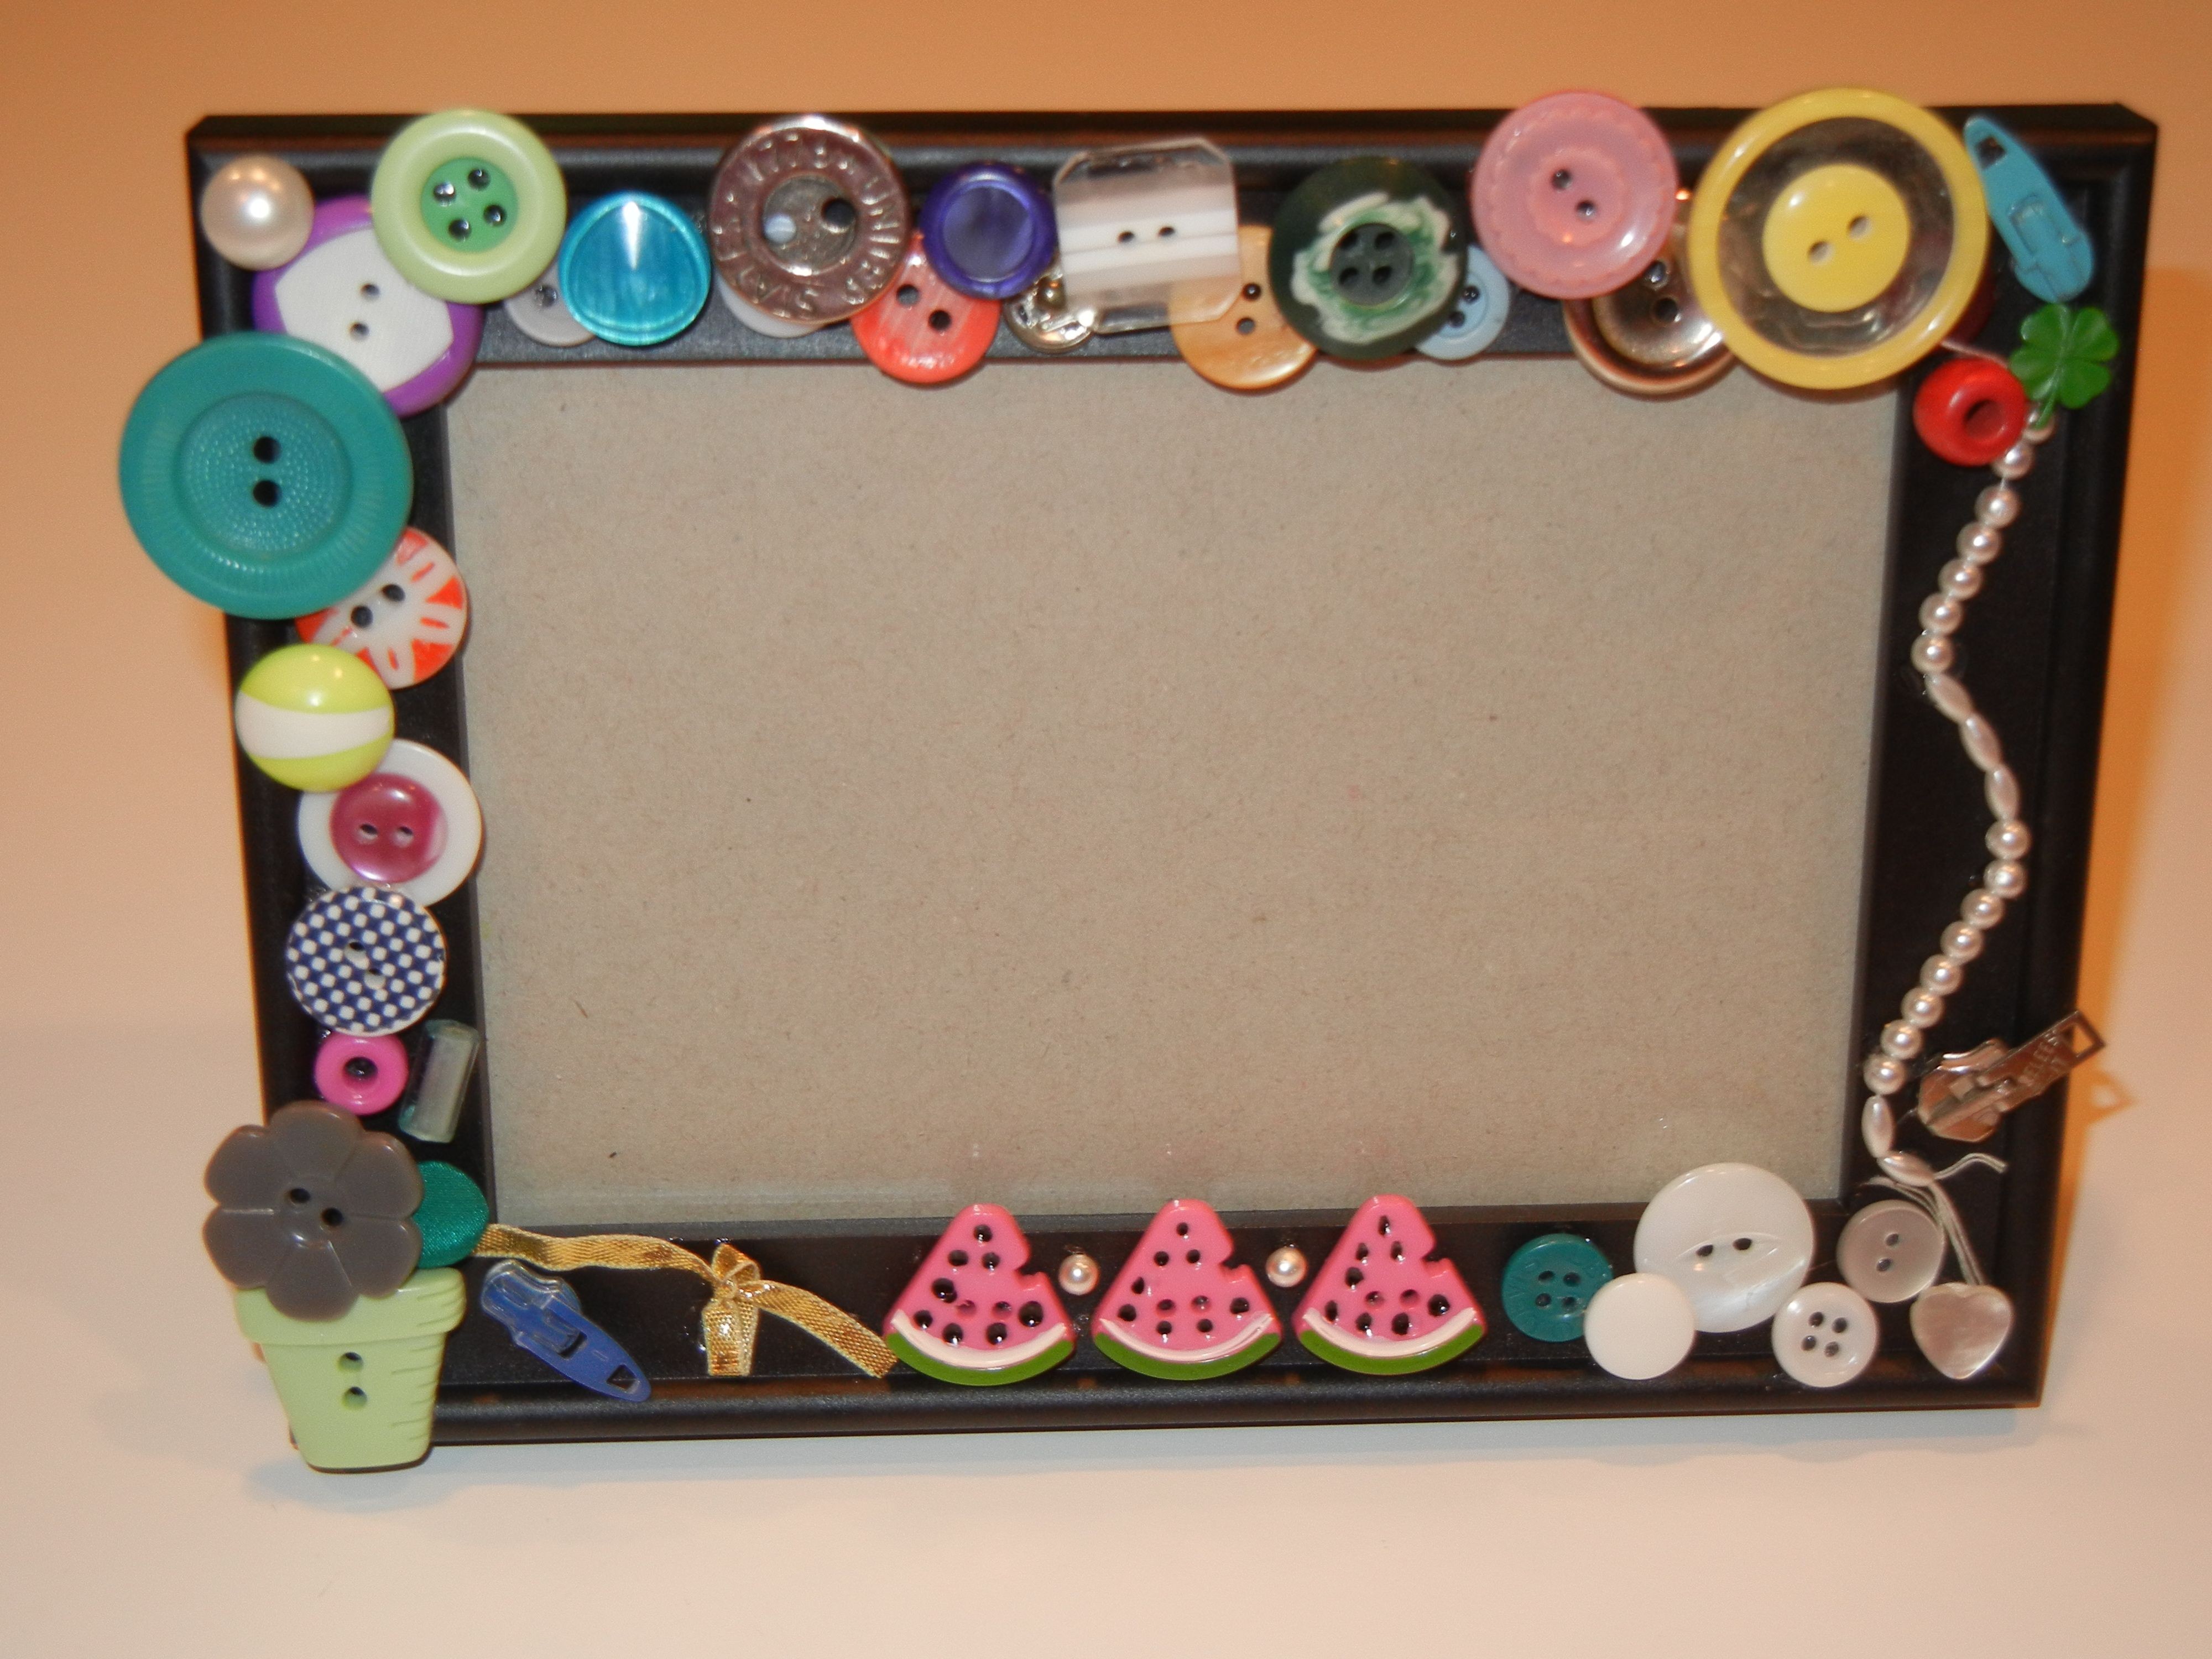 Decorating frames might be a great project for a sleepover or